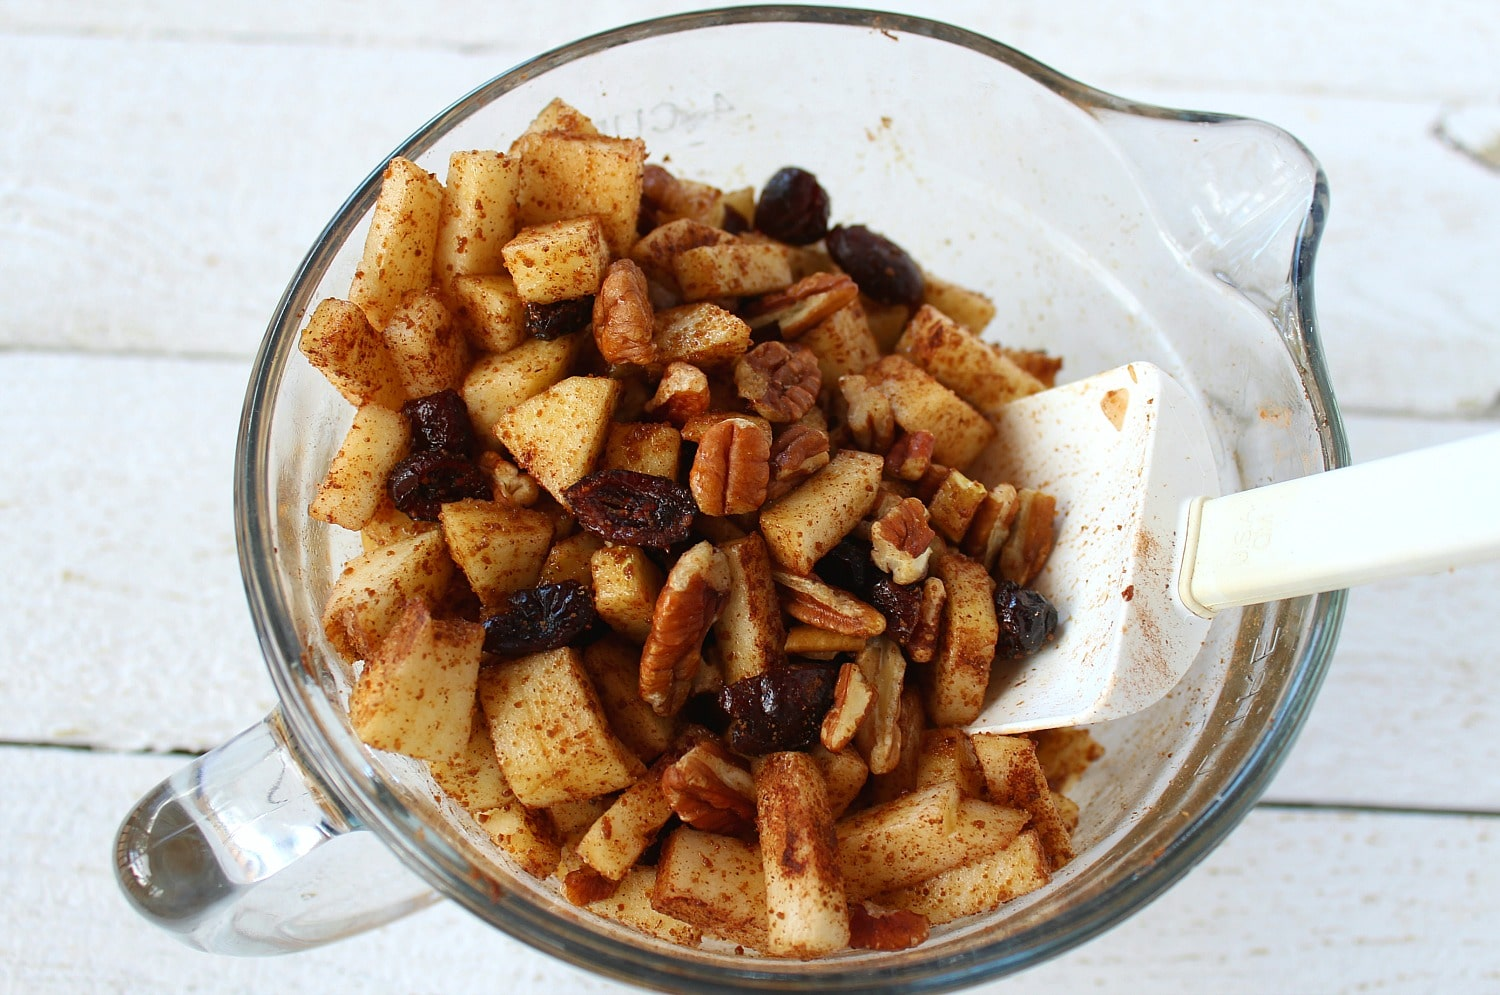 Combine diced apples, chopped pecans, dried cranberries, coconut sugar, salt and cinnamon in a medium sized bowl.